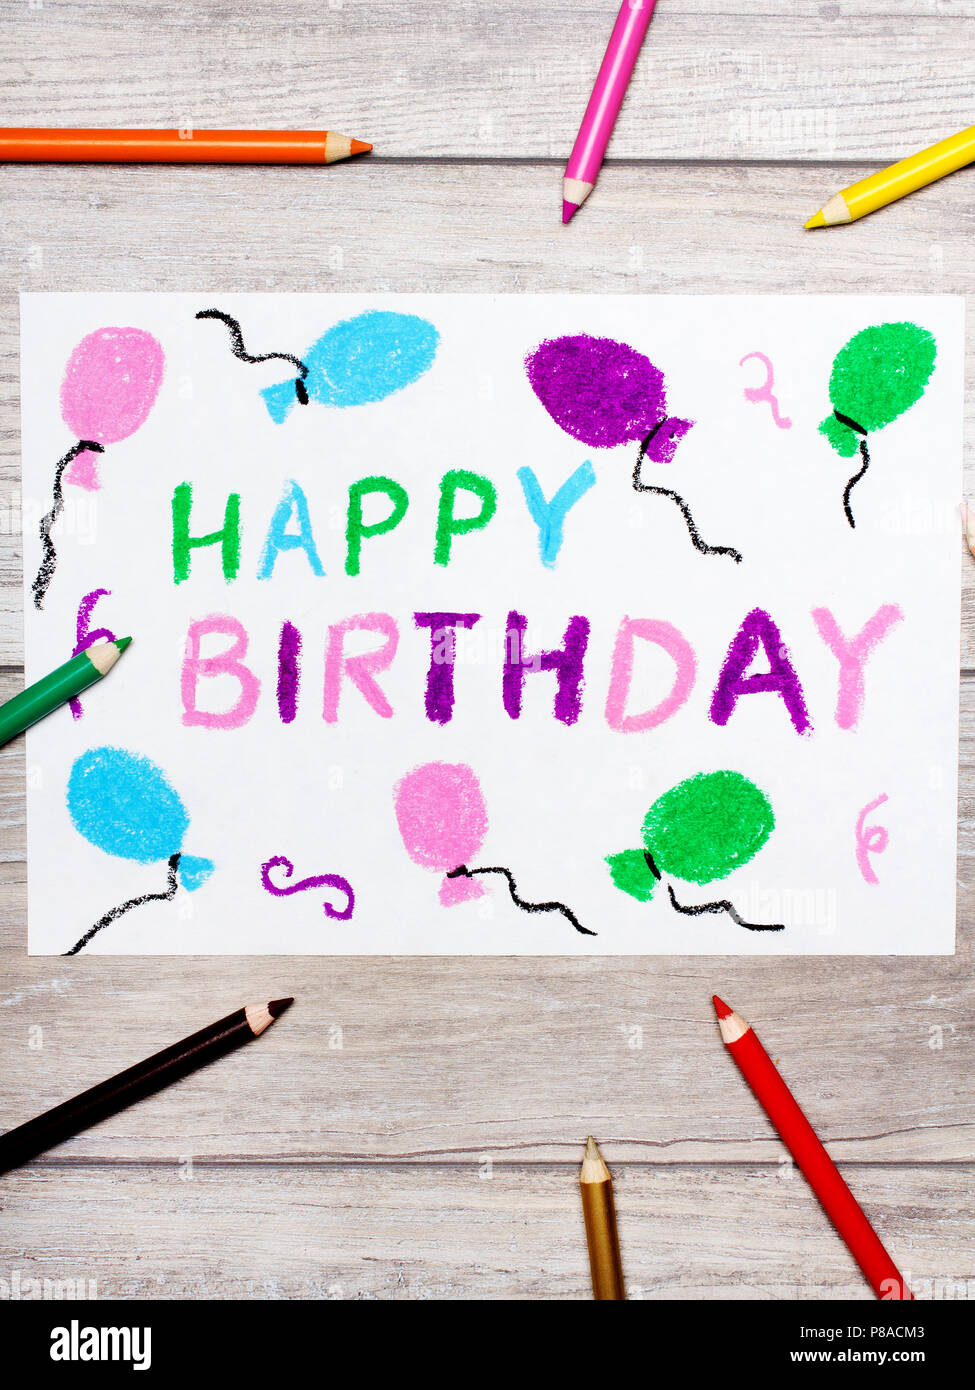 Photo De Dessin Colore Happy Birthday Card Sur Fond De Bois Photo Stock Alamy